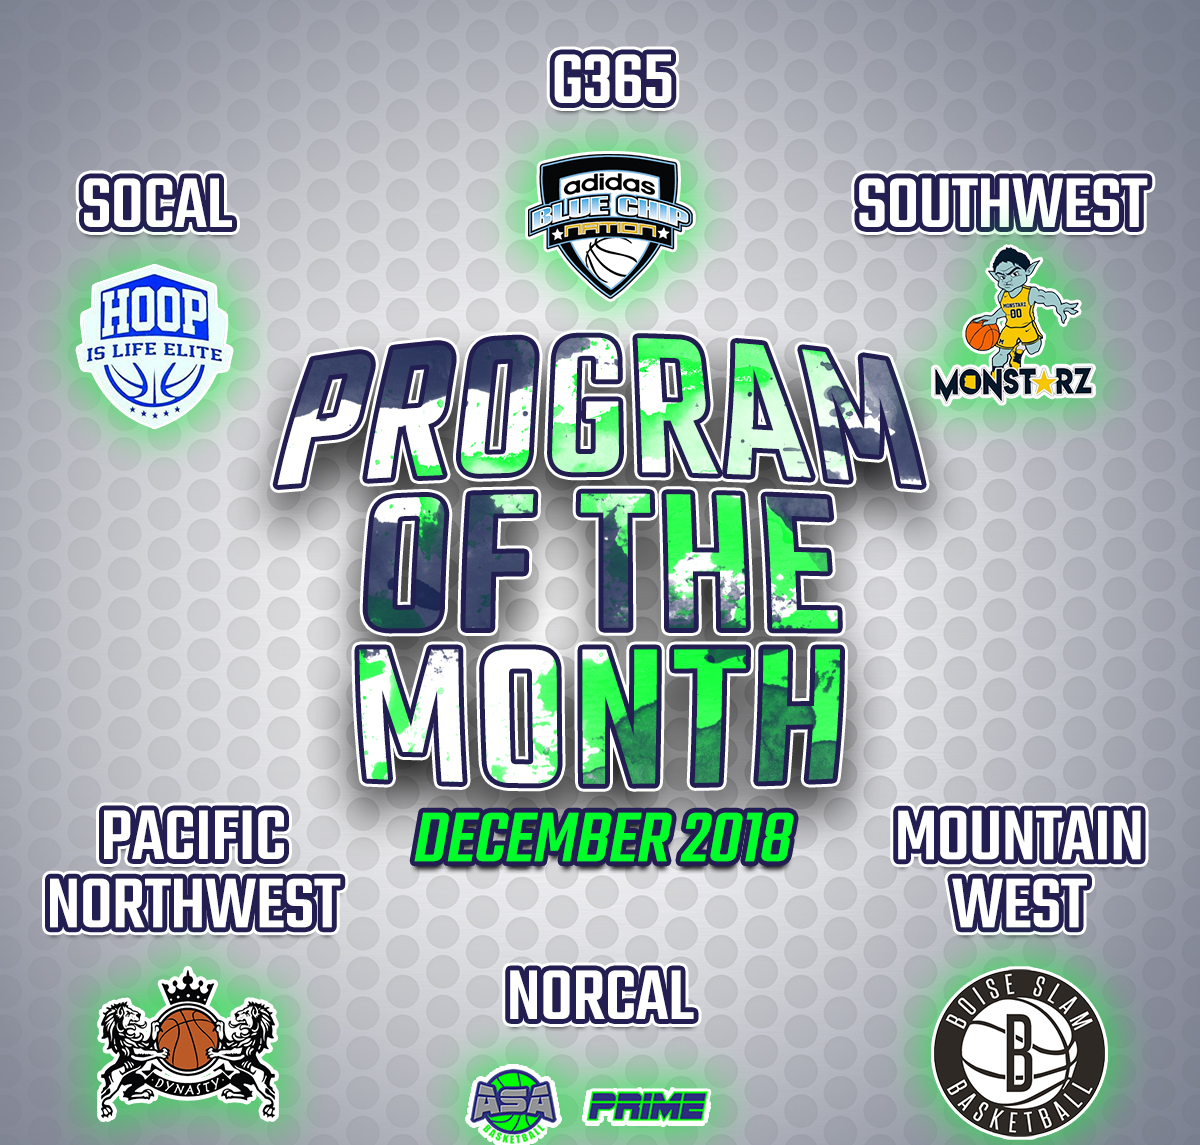 CLub Team of the month. December 11, 2018